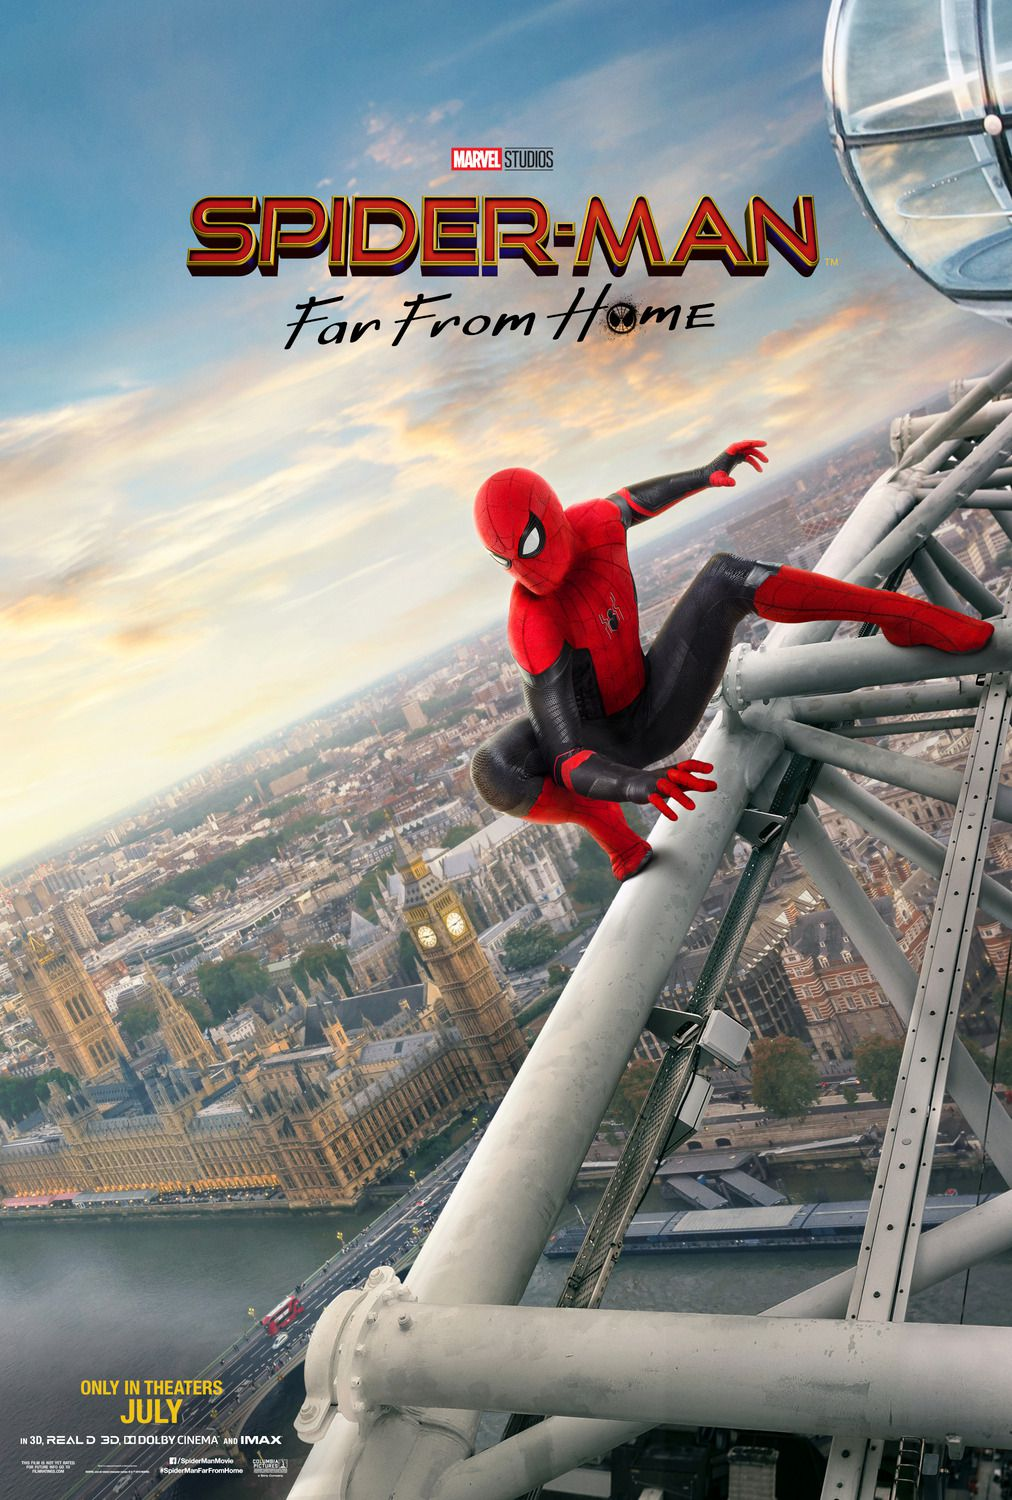 Spiderman far from Home (2019) poster London eye